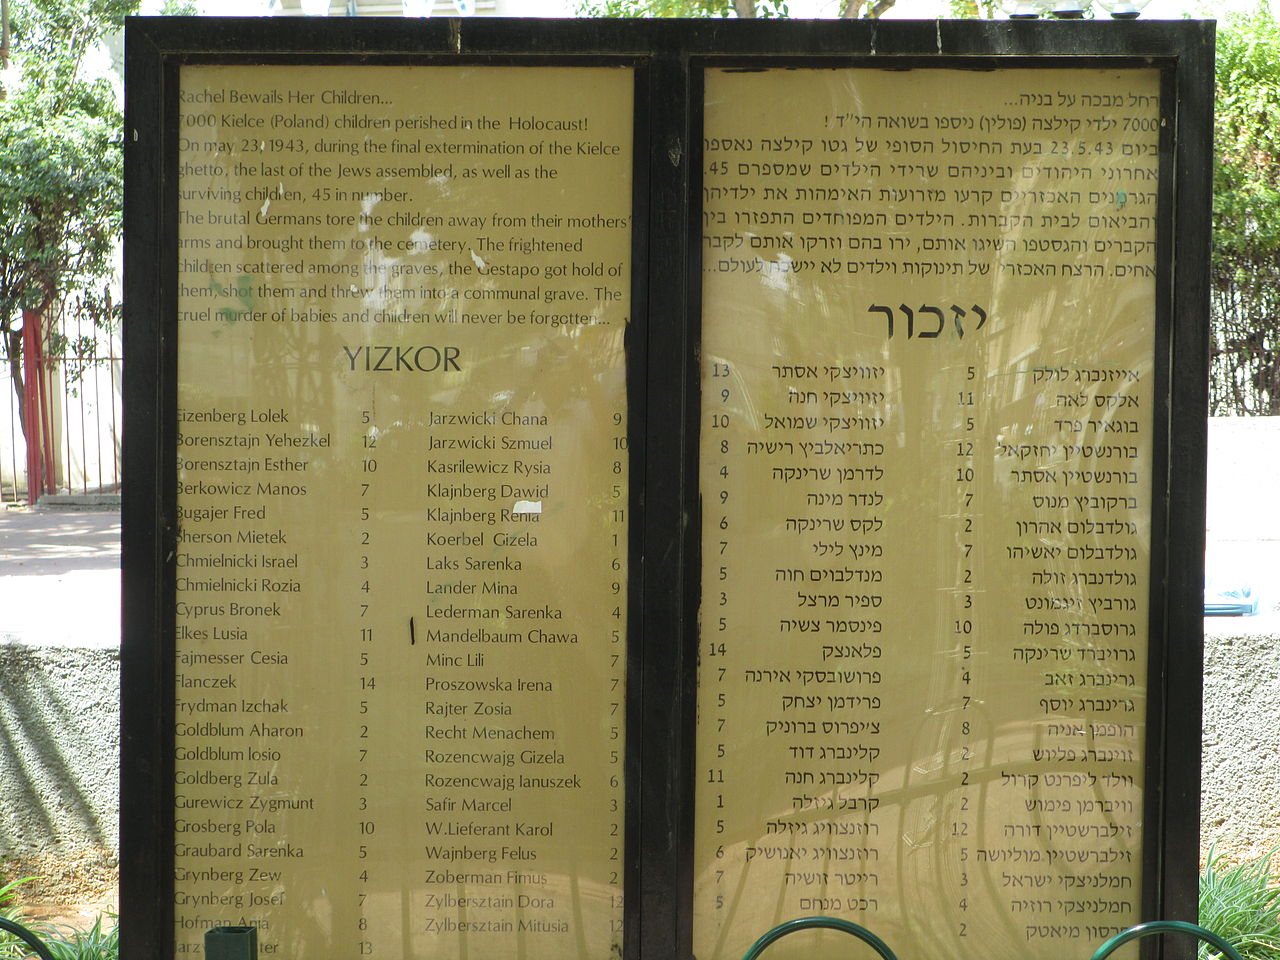 1280px-Izkor_memorial_plaque_to_Kielce's_children,_Neve_Ofer,_Tel_Aviv.JPG